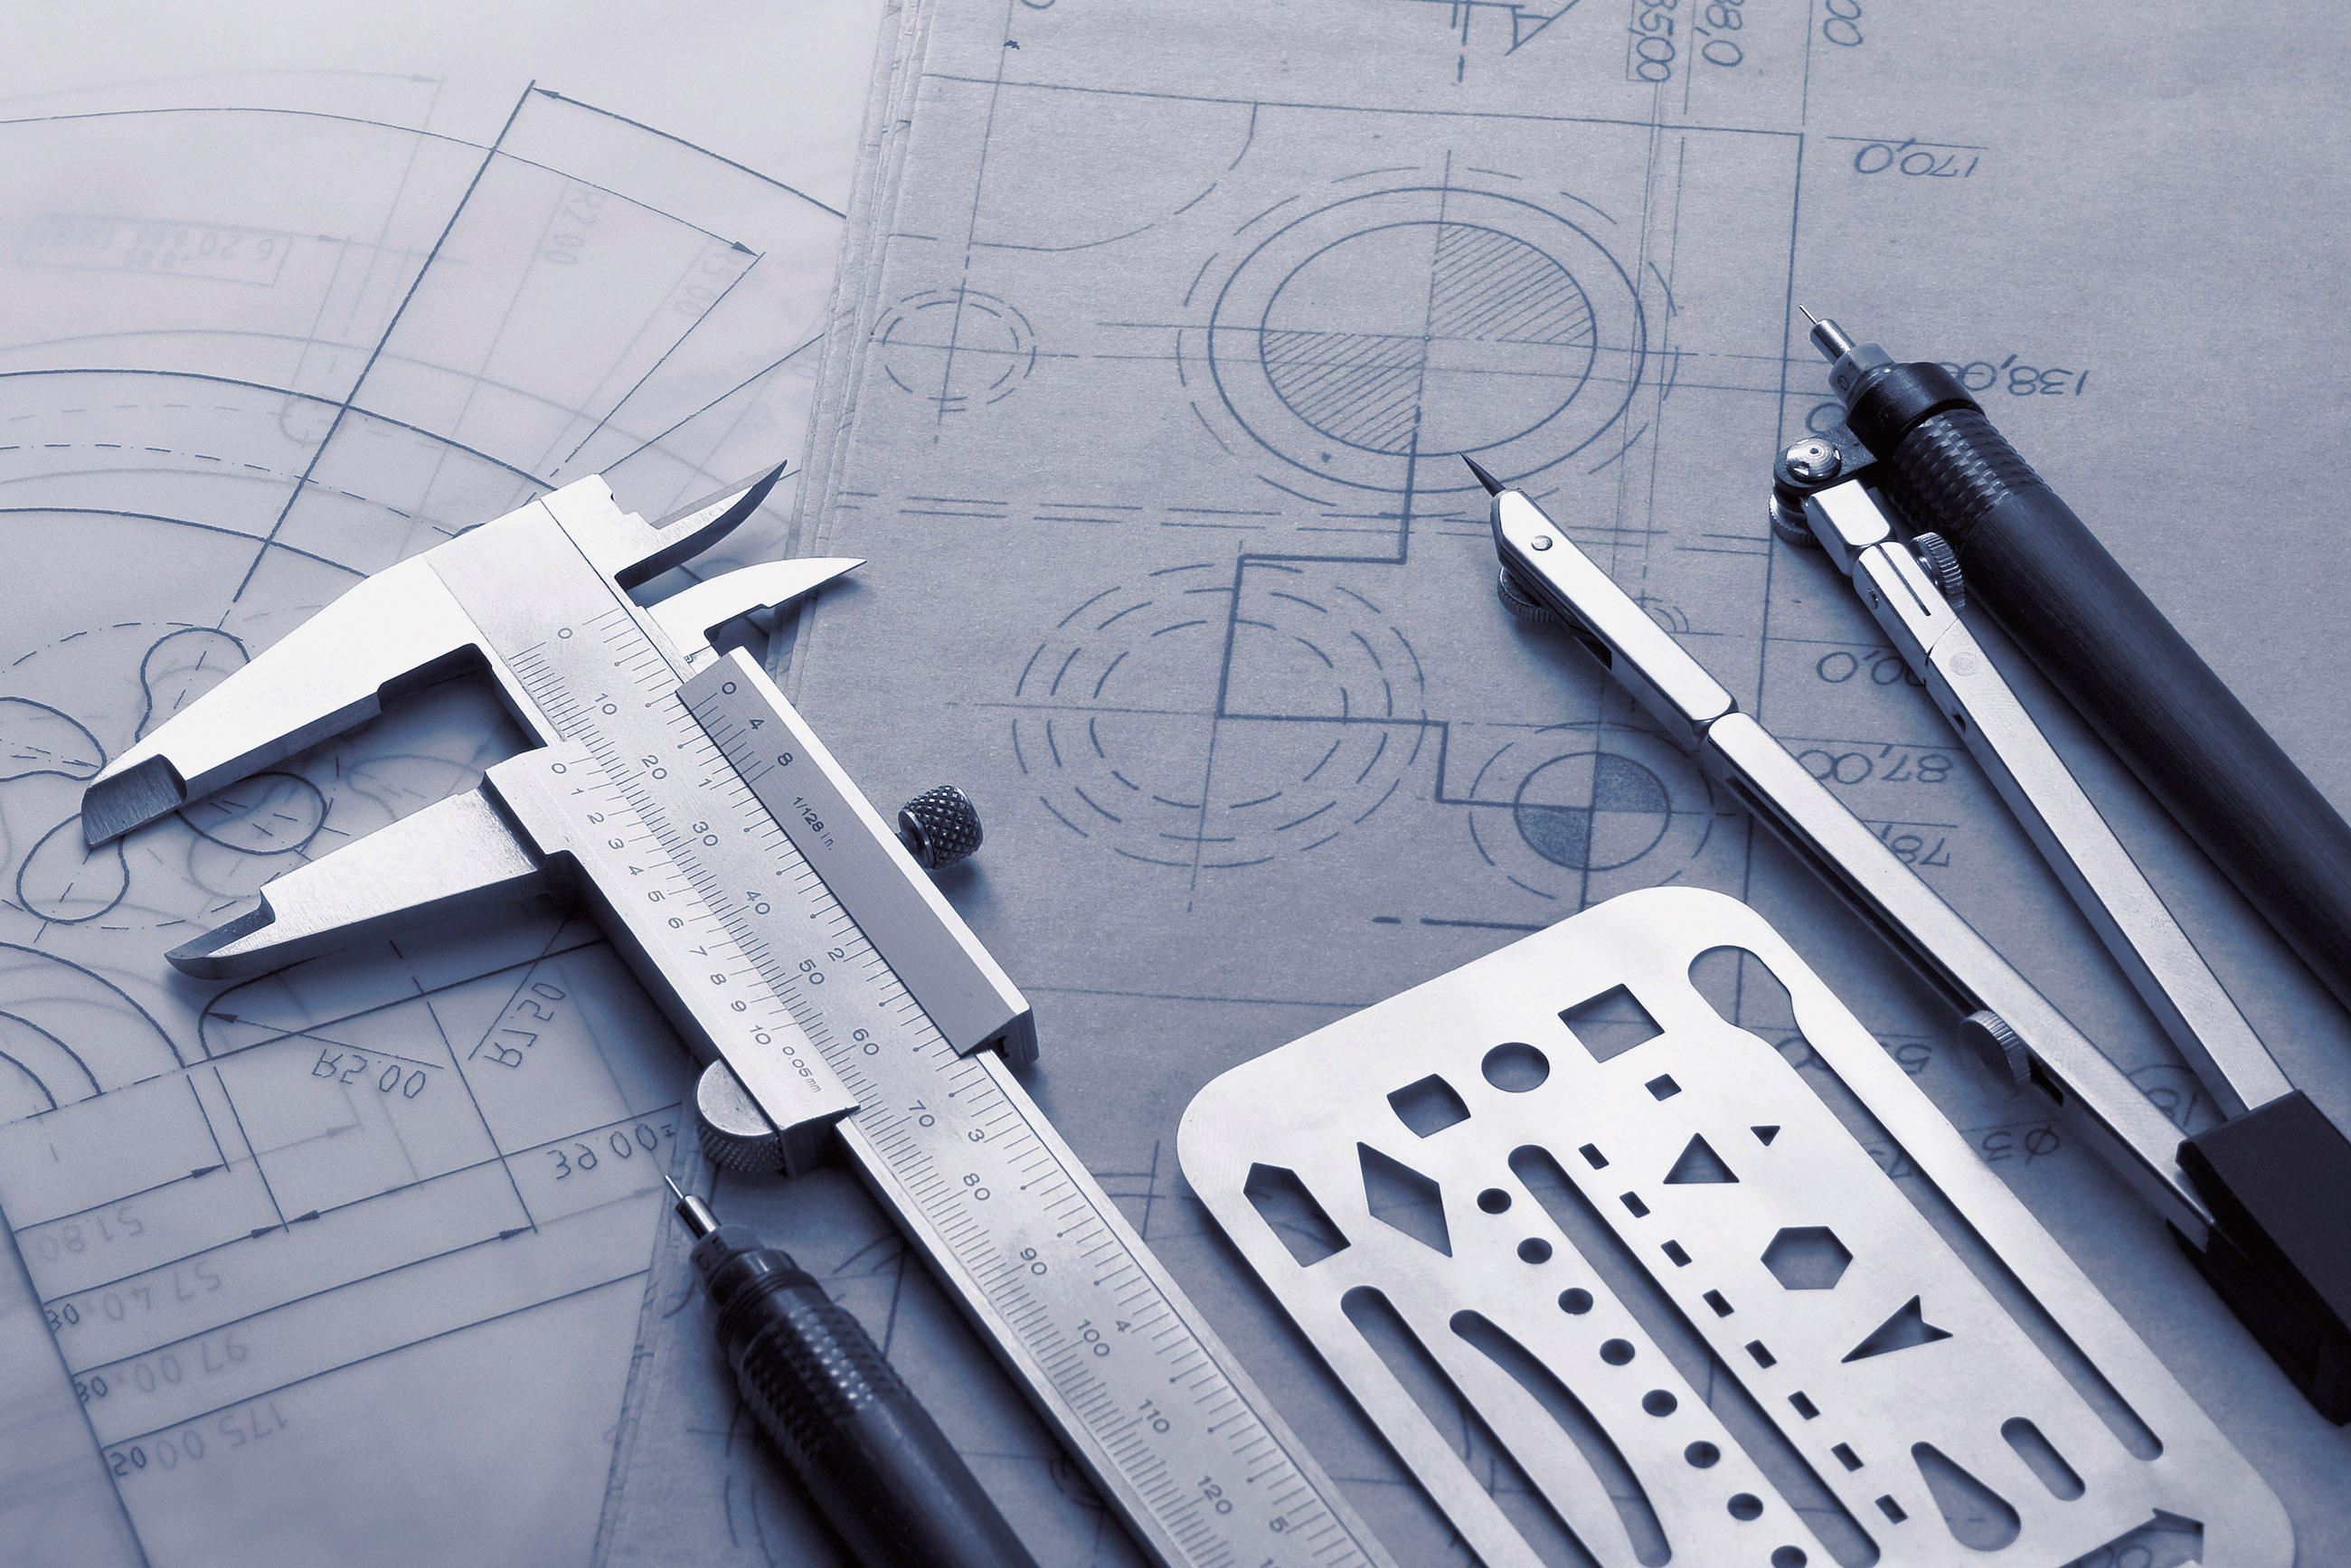 24 Jun 2013 --- Technical drawing instruments. --- Image by © KTSDESIGN/Science Photo Library/Corbis